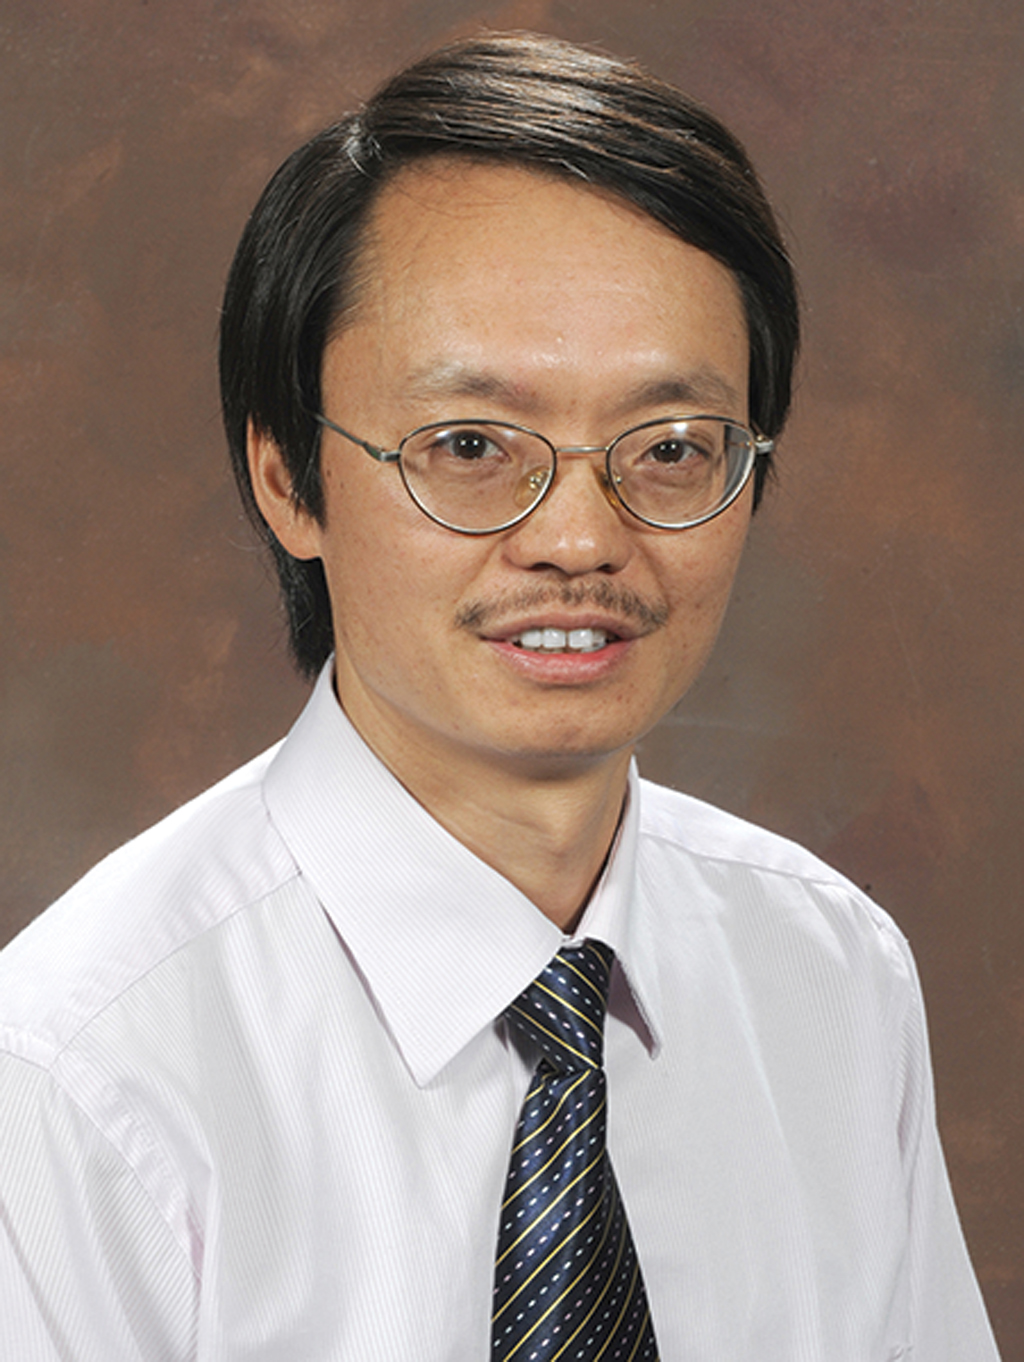 photo of Zheng Dong, PhD